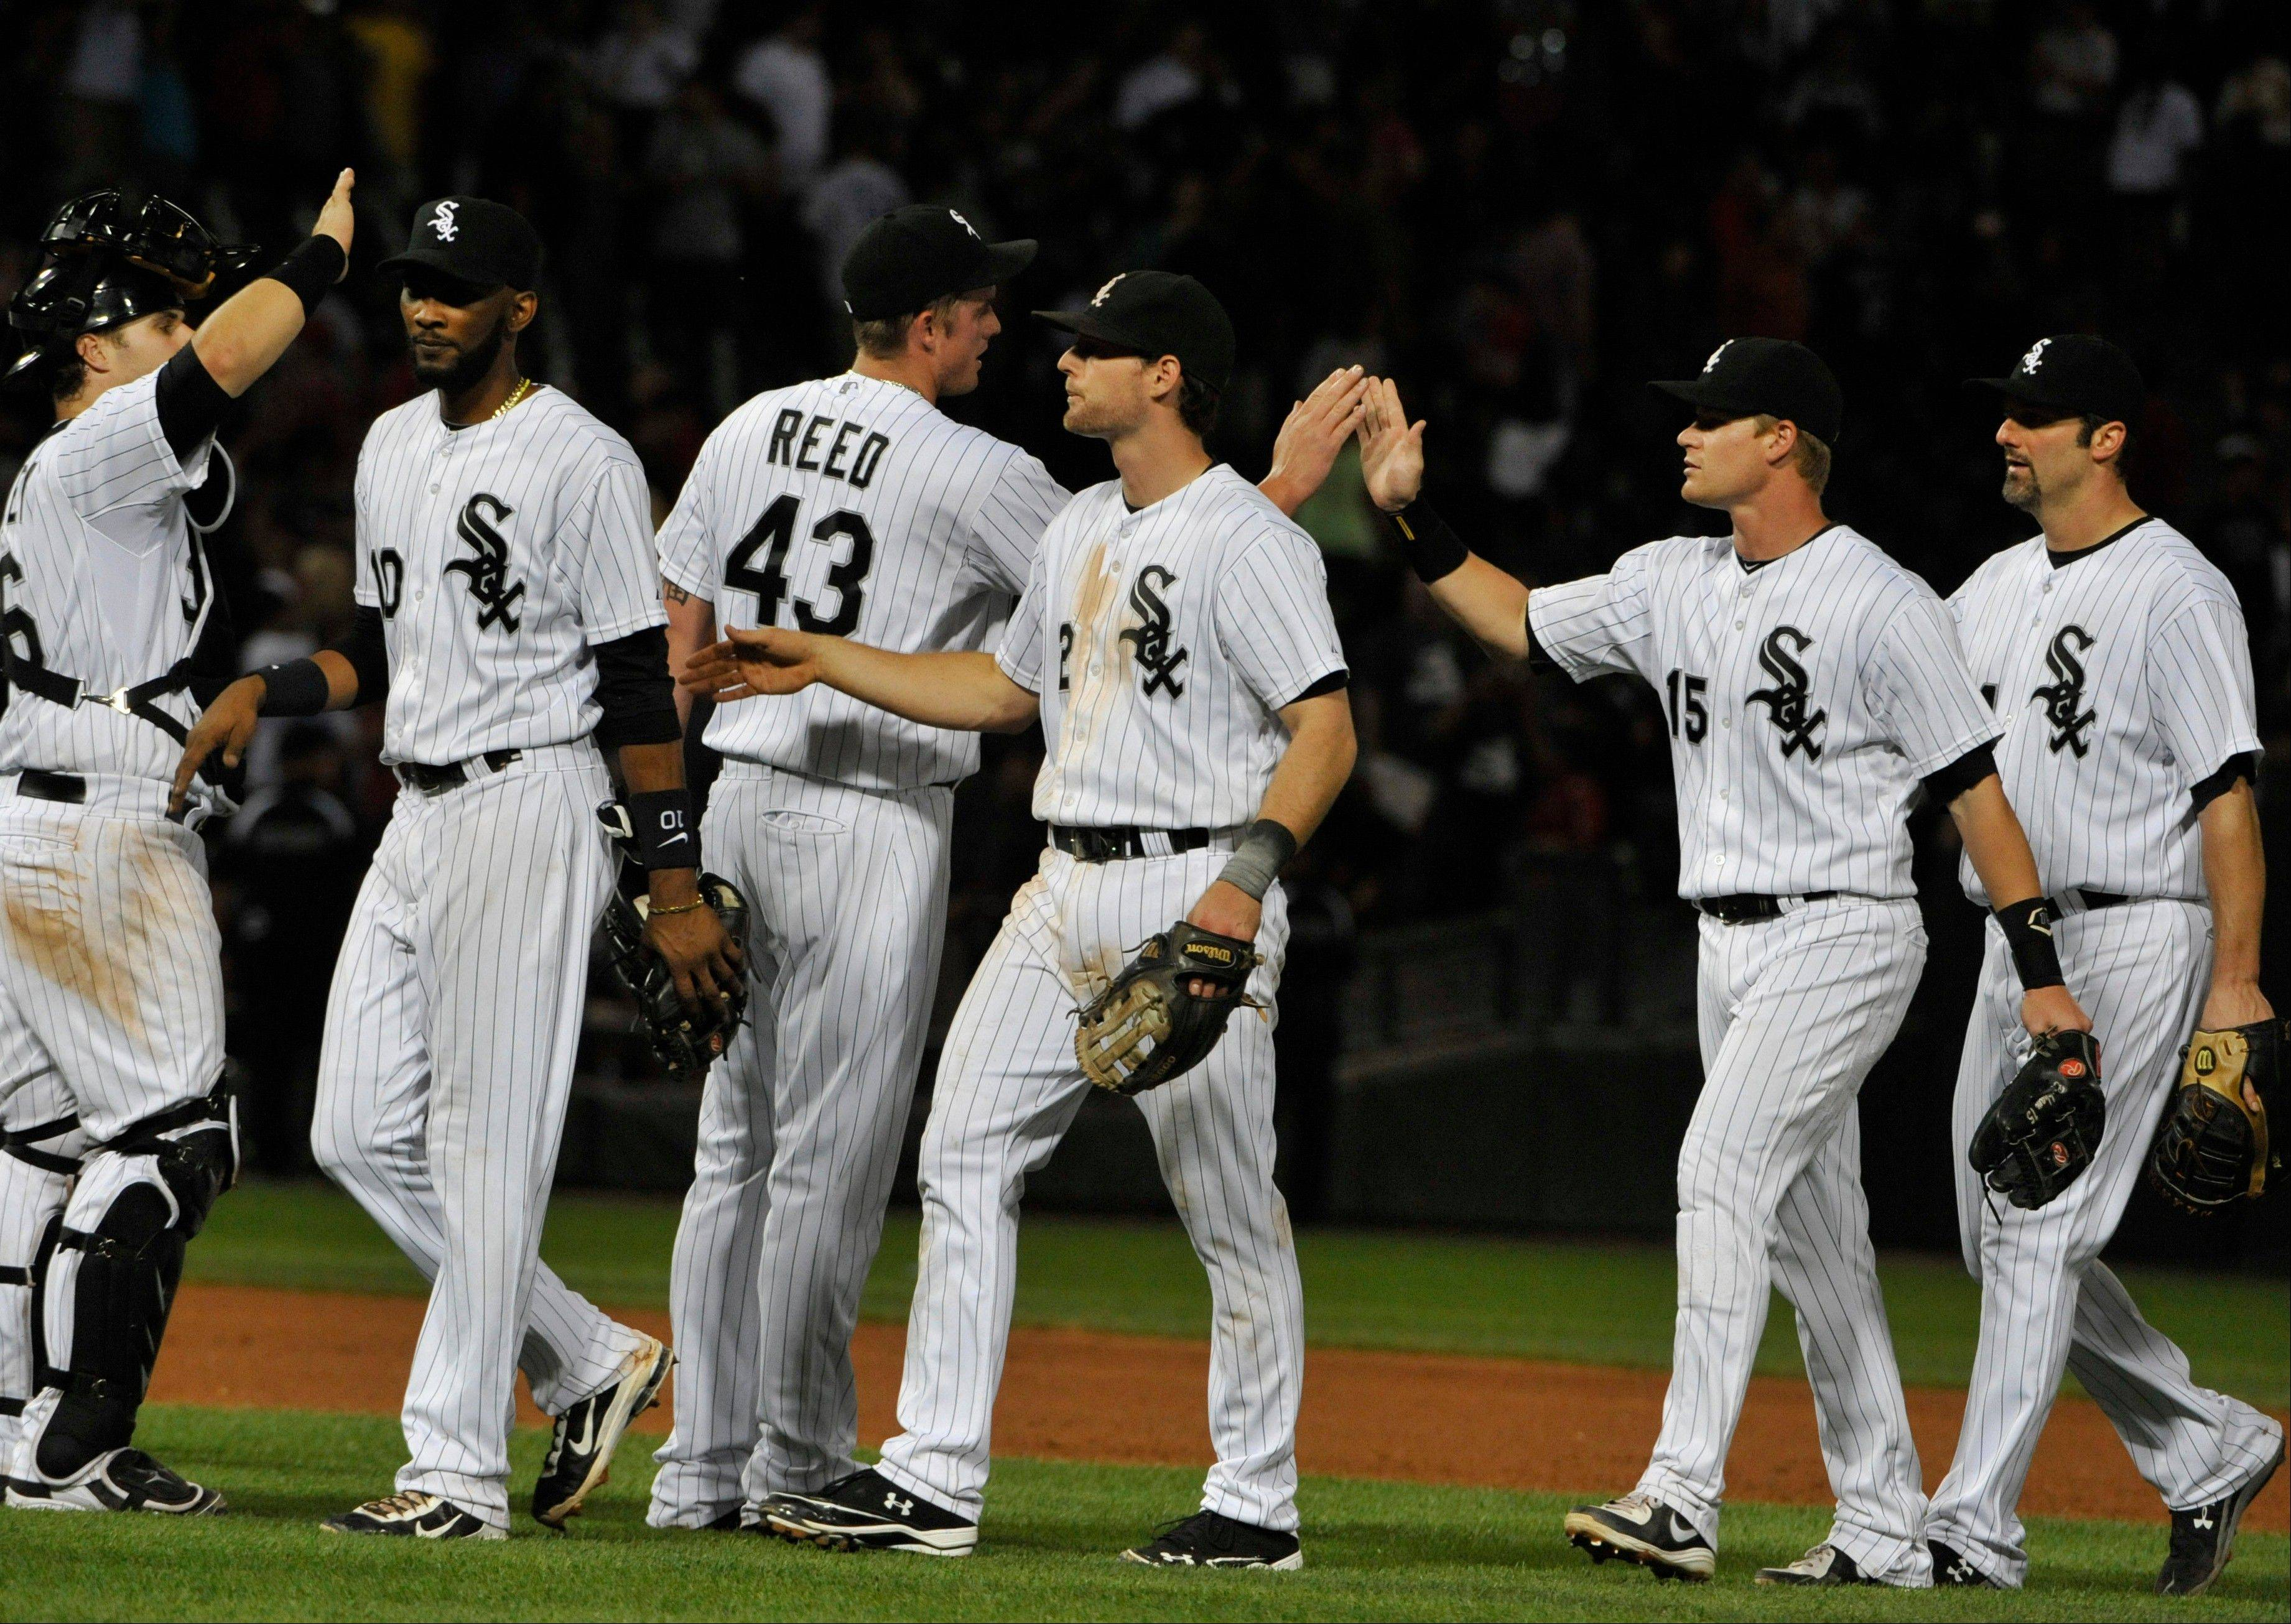 The Chicago White Sox celebrate their win in over the New York Yankees in a baseball game Tuesday, Aug. 6, 2013 in Chicago. The White Sox won 3-2.